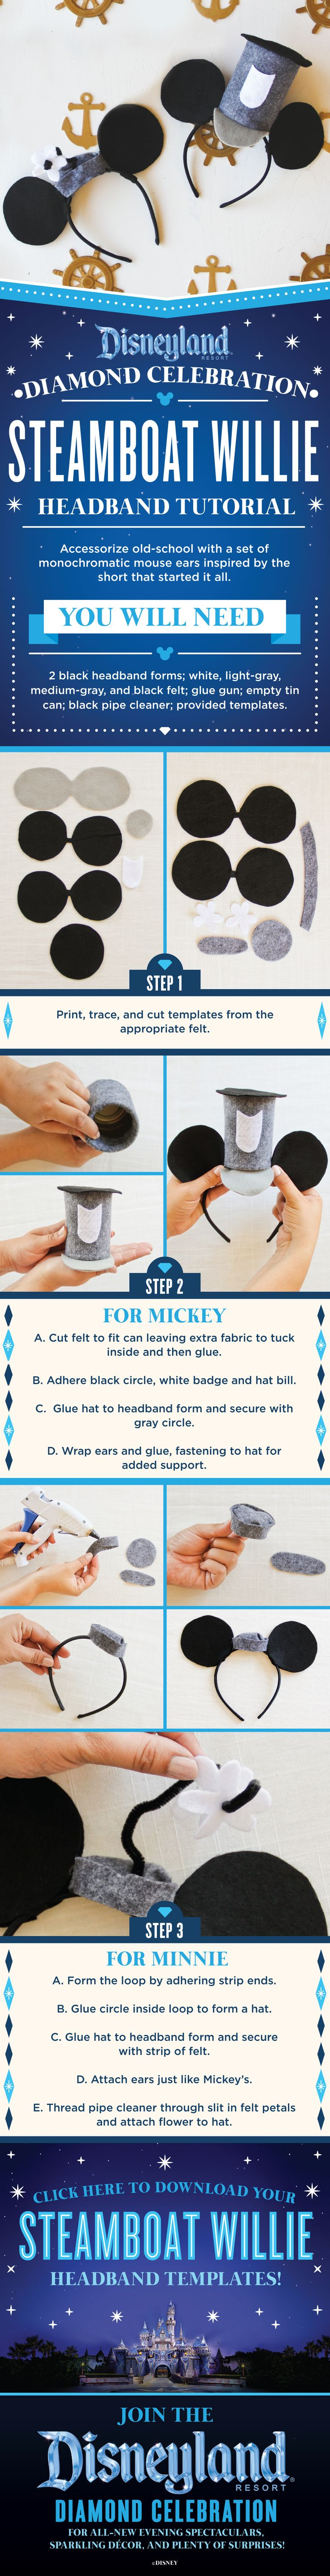 Join the Disneyland Resort Diamond Celebration and show off your retro Disney Side with this DIY Steamboat Willie inspired headband tutorial!